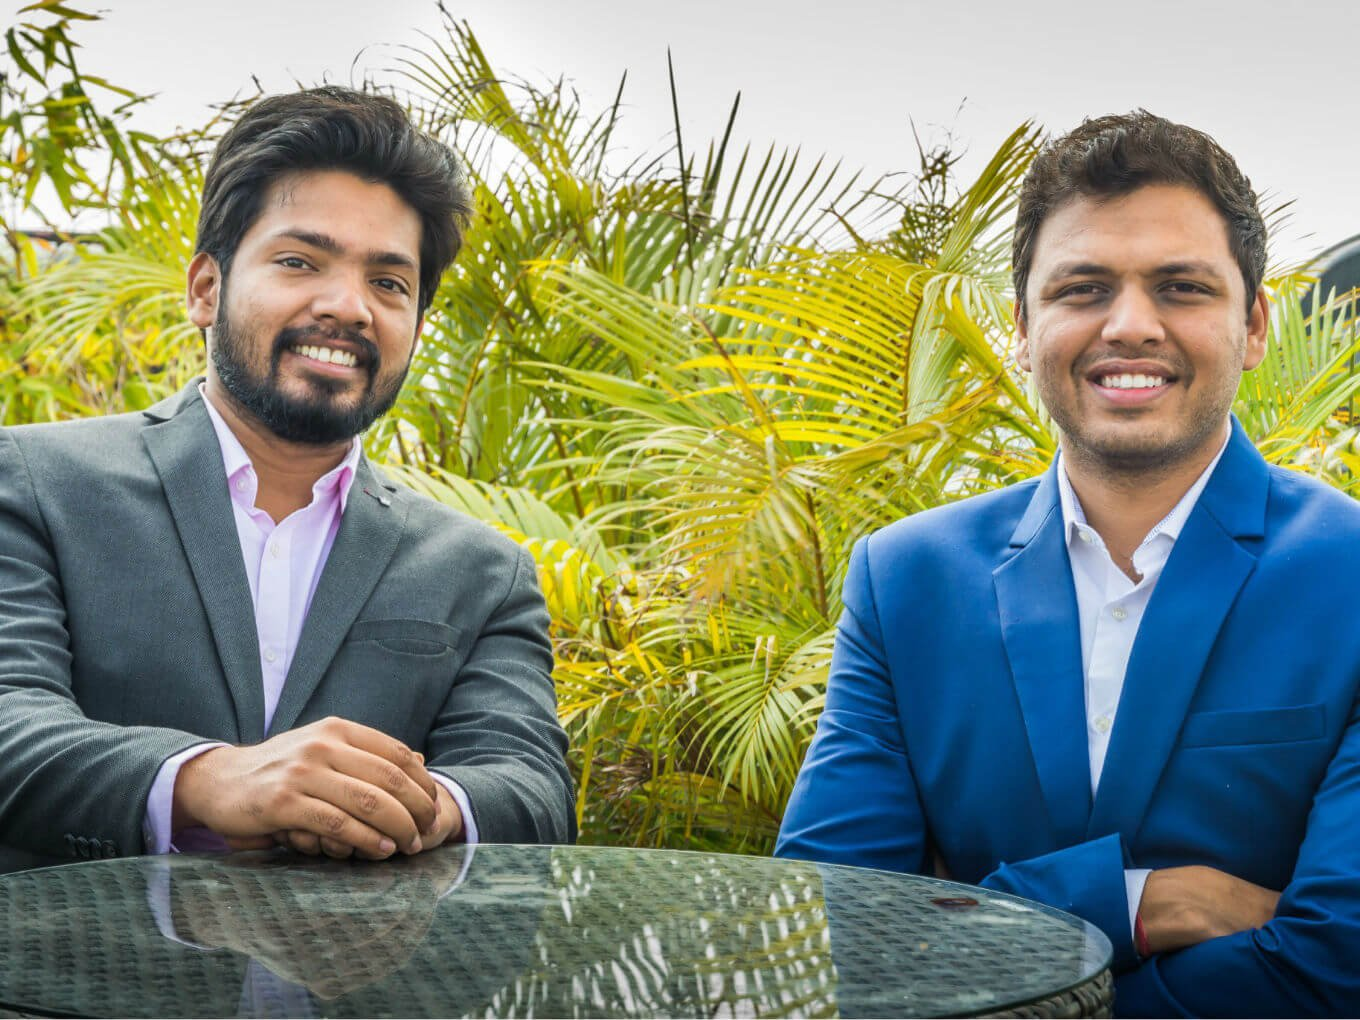 Co-living Startup Grexter Raises $1.5 Mn From Venture Catalysts